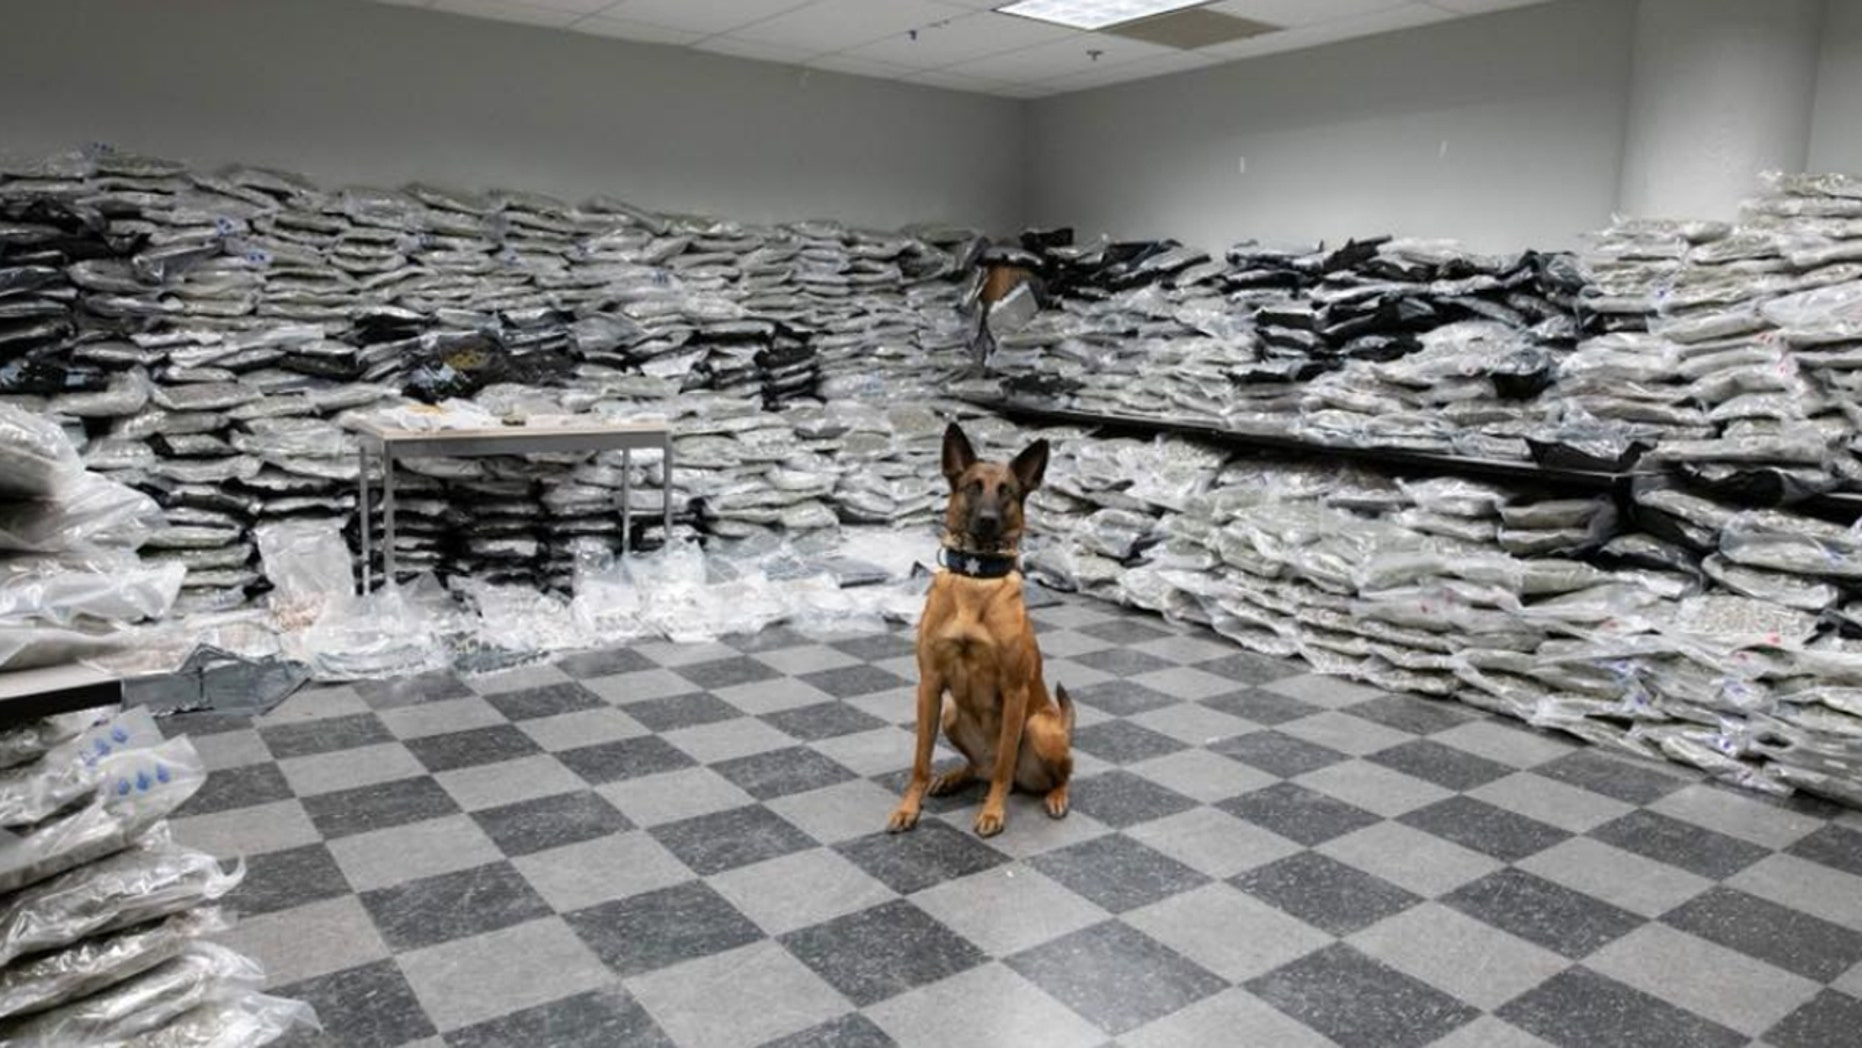 Chicago police found more than 1,500 pounds of marijuana during a traffic stop on Saturday.